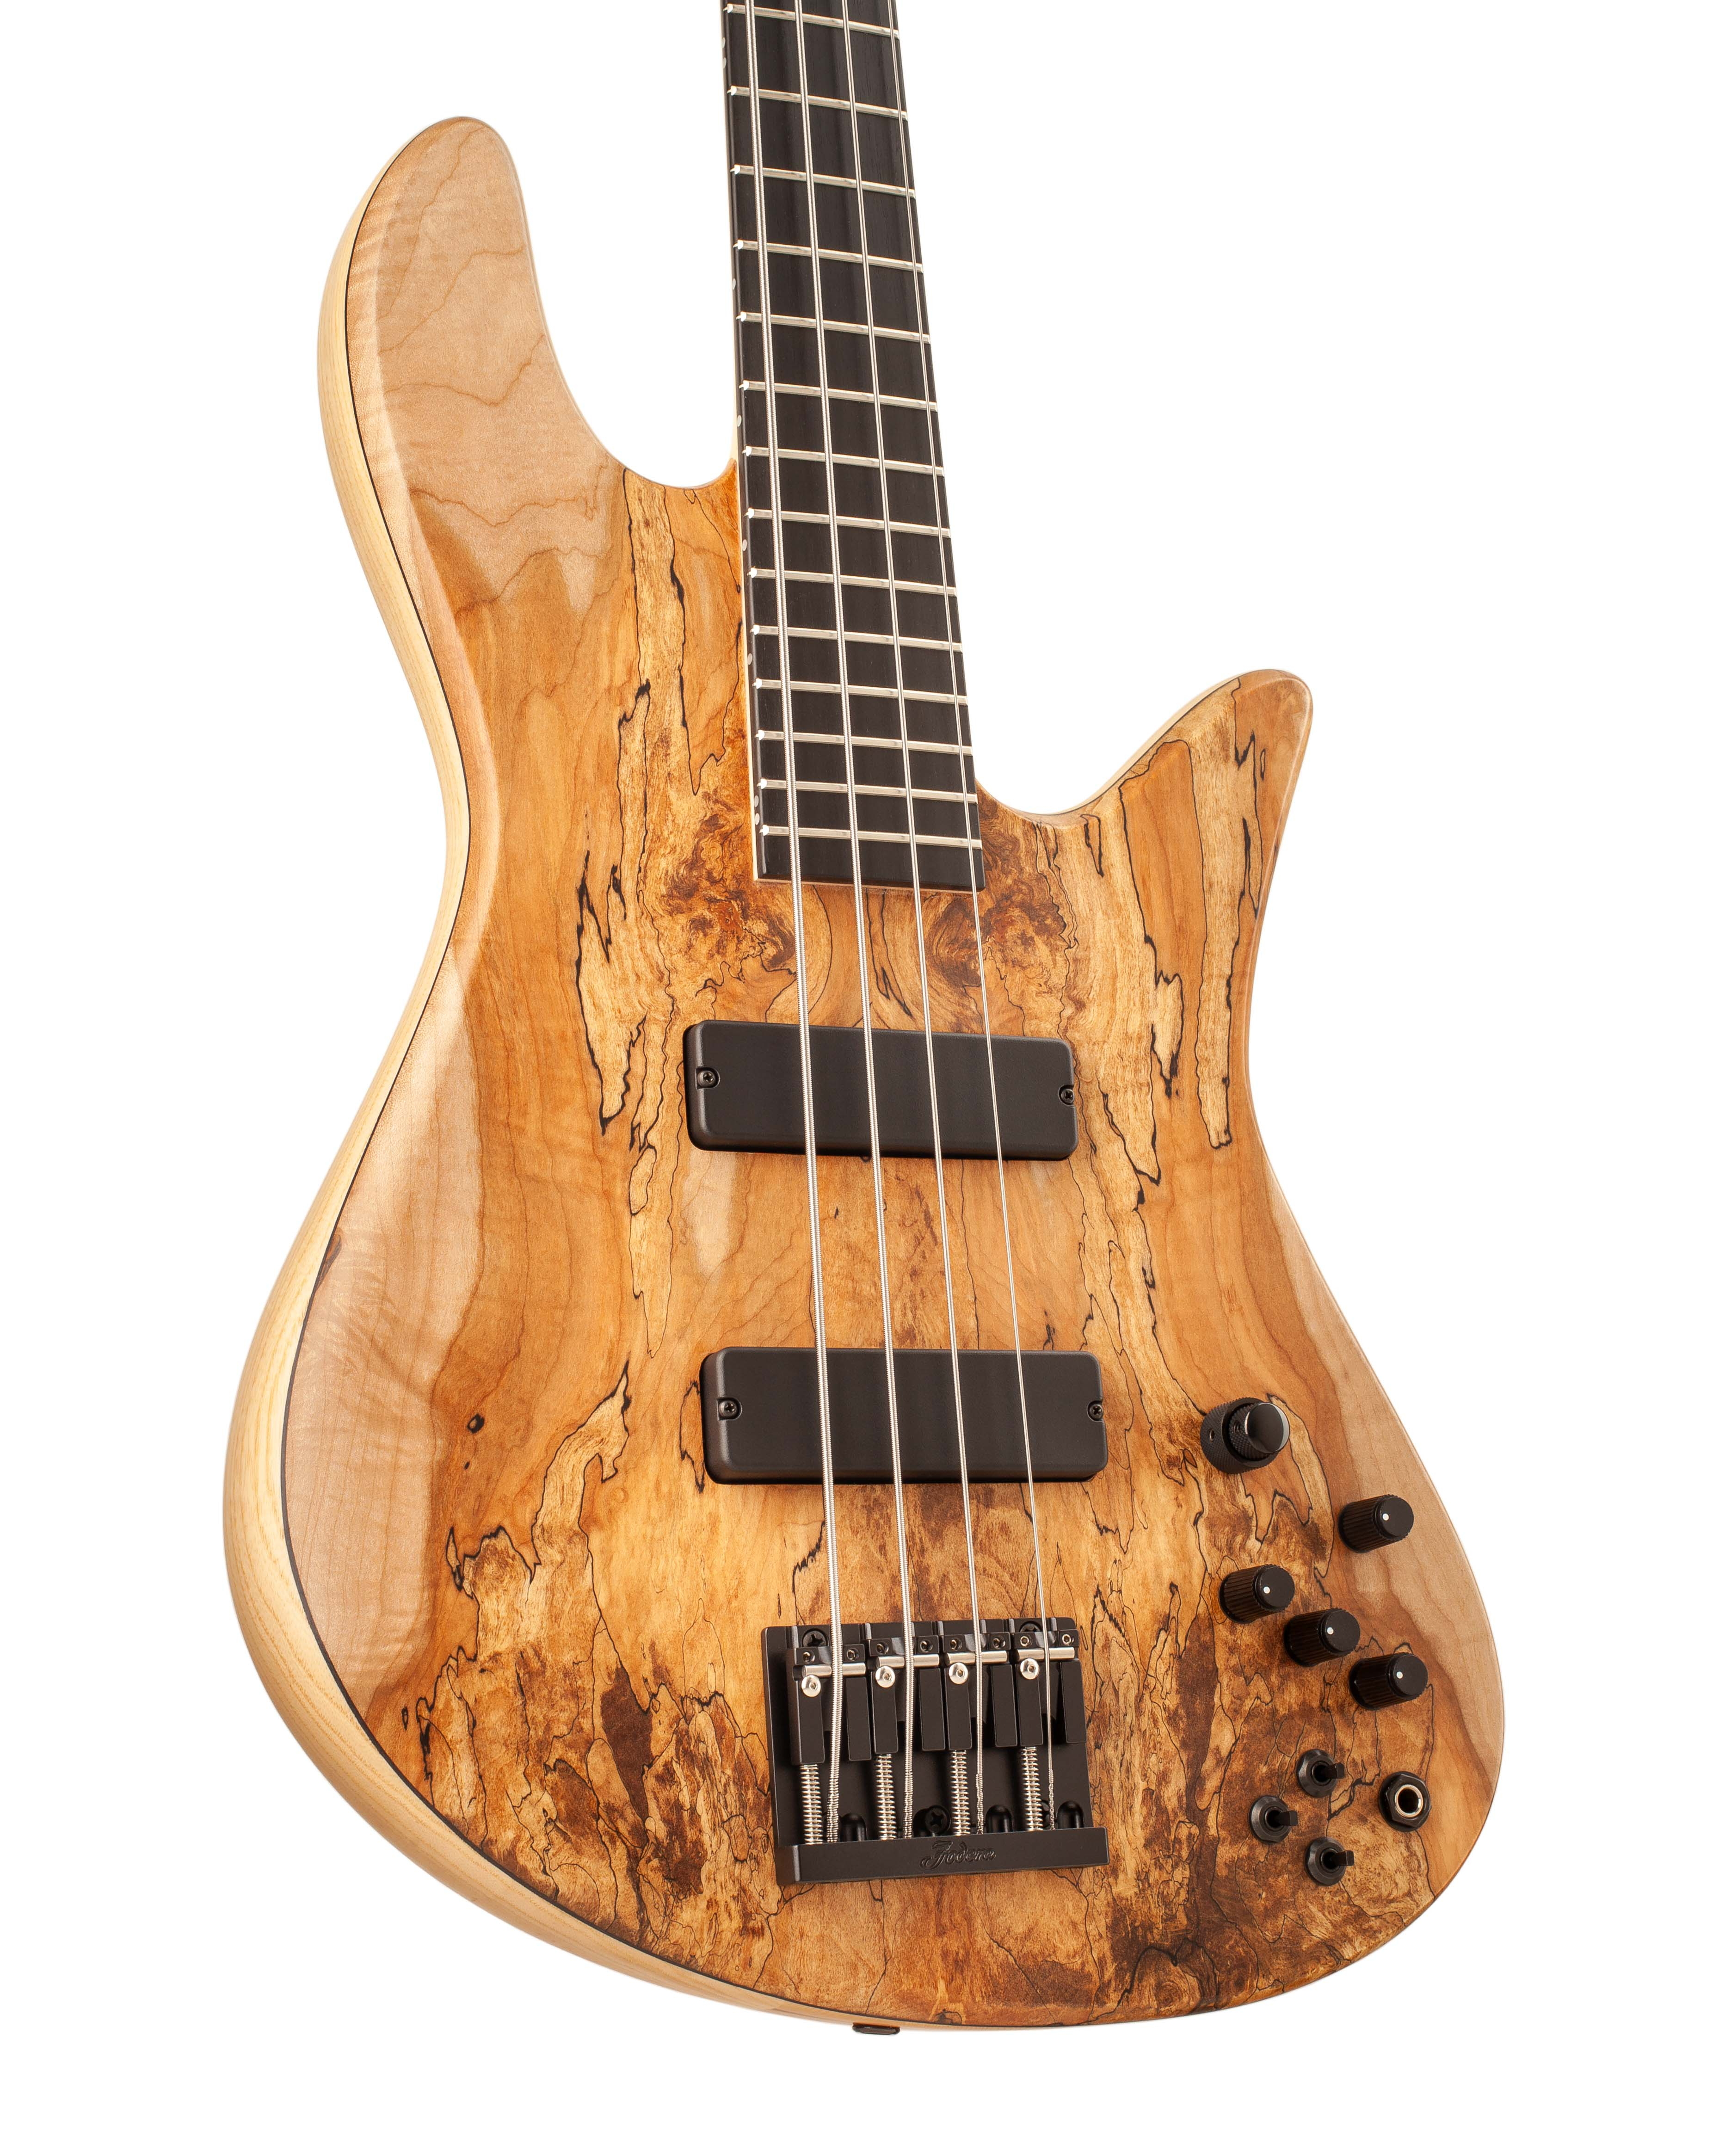 Custom Bass With Textured Topwood Body